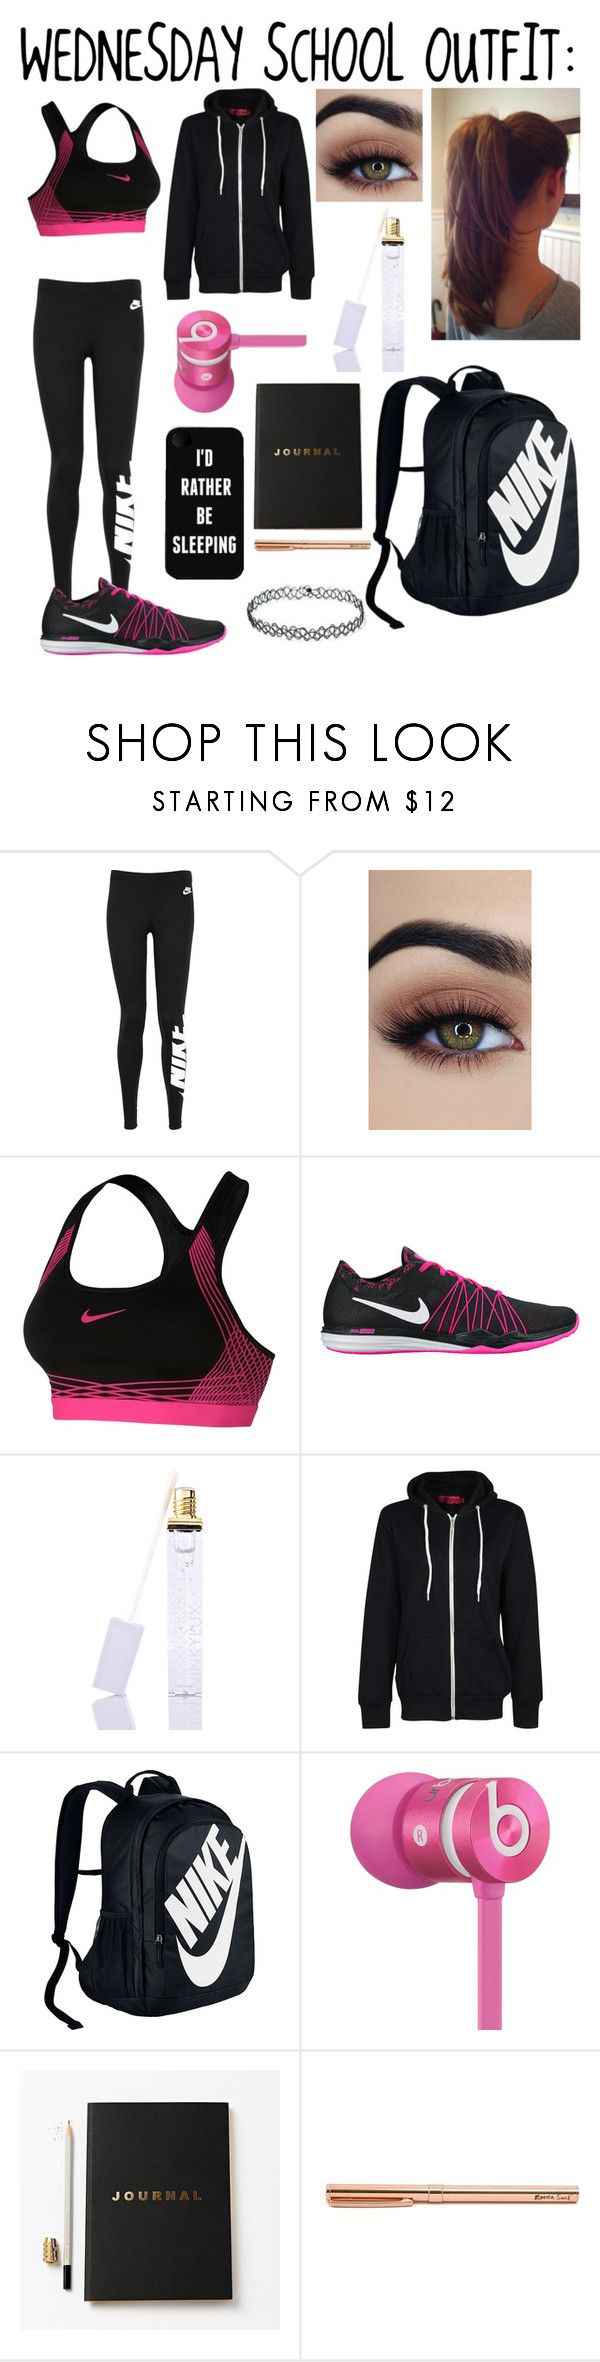 "f52f63935330eaaf8fa2a3000e40ae15  winky lux katie omalley - ""Wednesday school outfit! :3"" by yourlittledemonx3 on Polyvore featuring NIKE, W..."